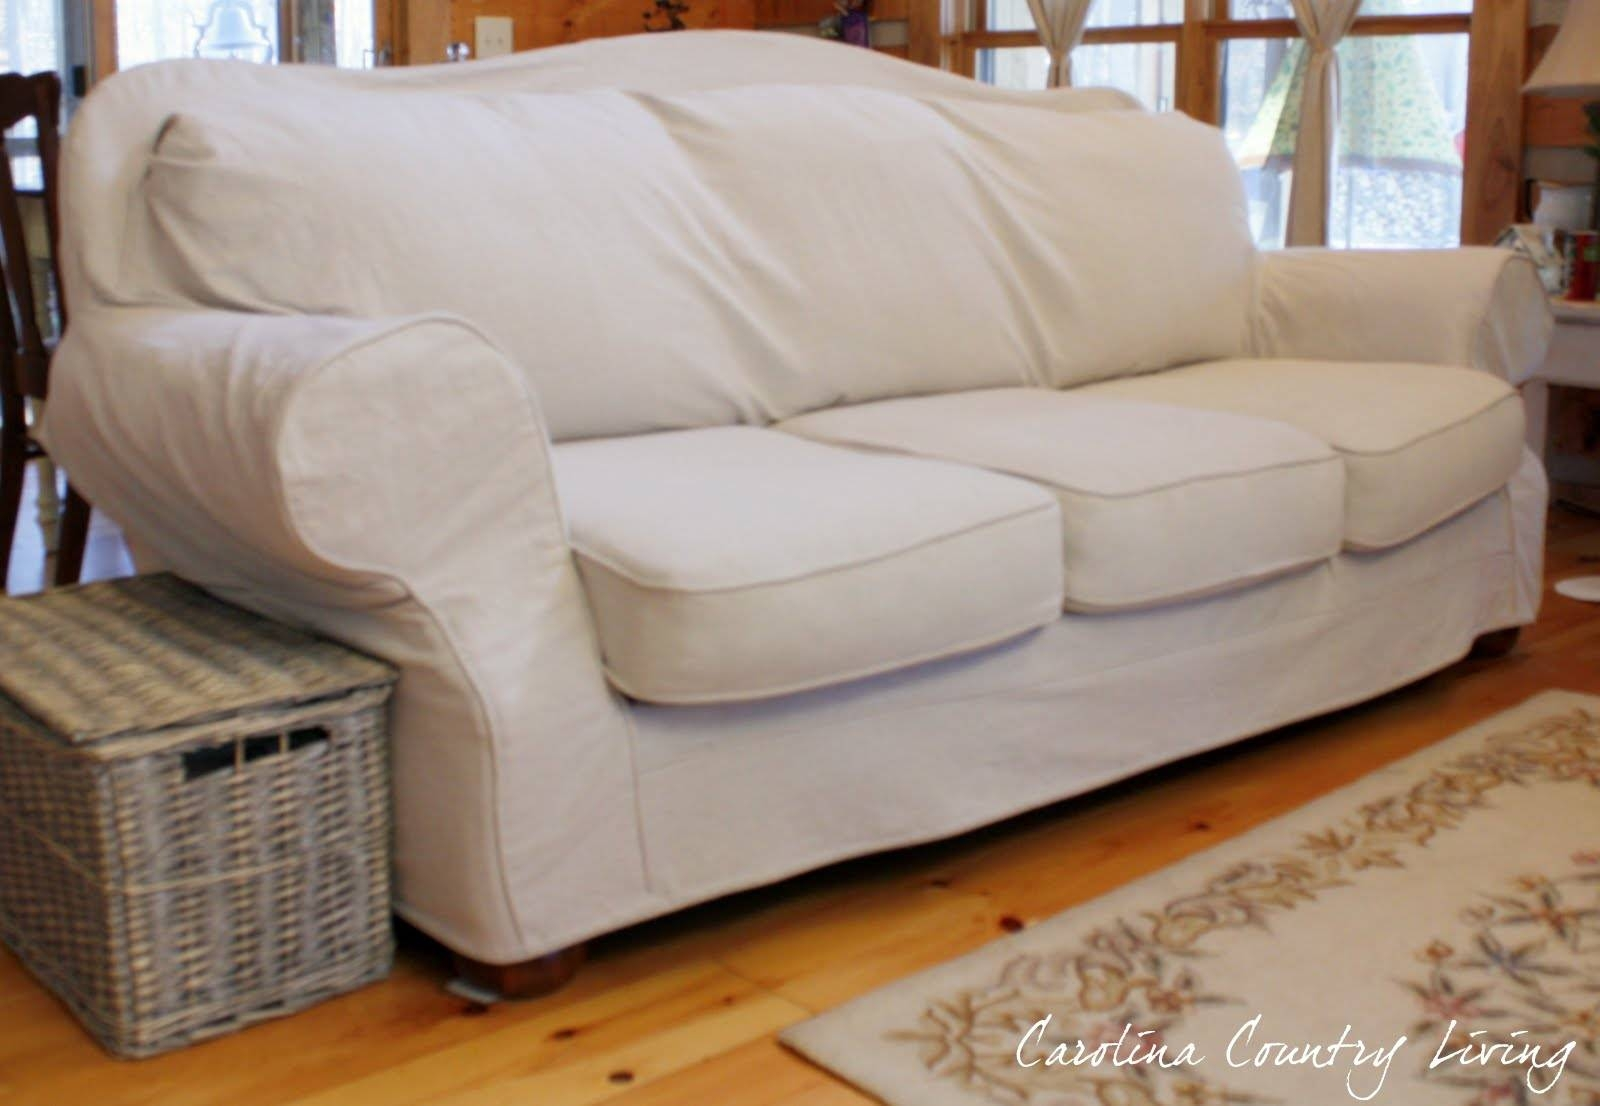 Carolina Country Living: Drop Cloth Sofa Slipcover for Camel Back Couch Slipcovers (Image 4 of 15)